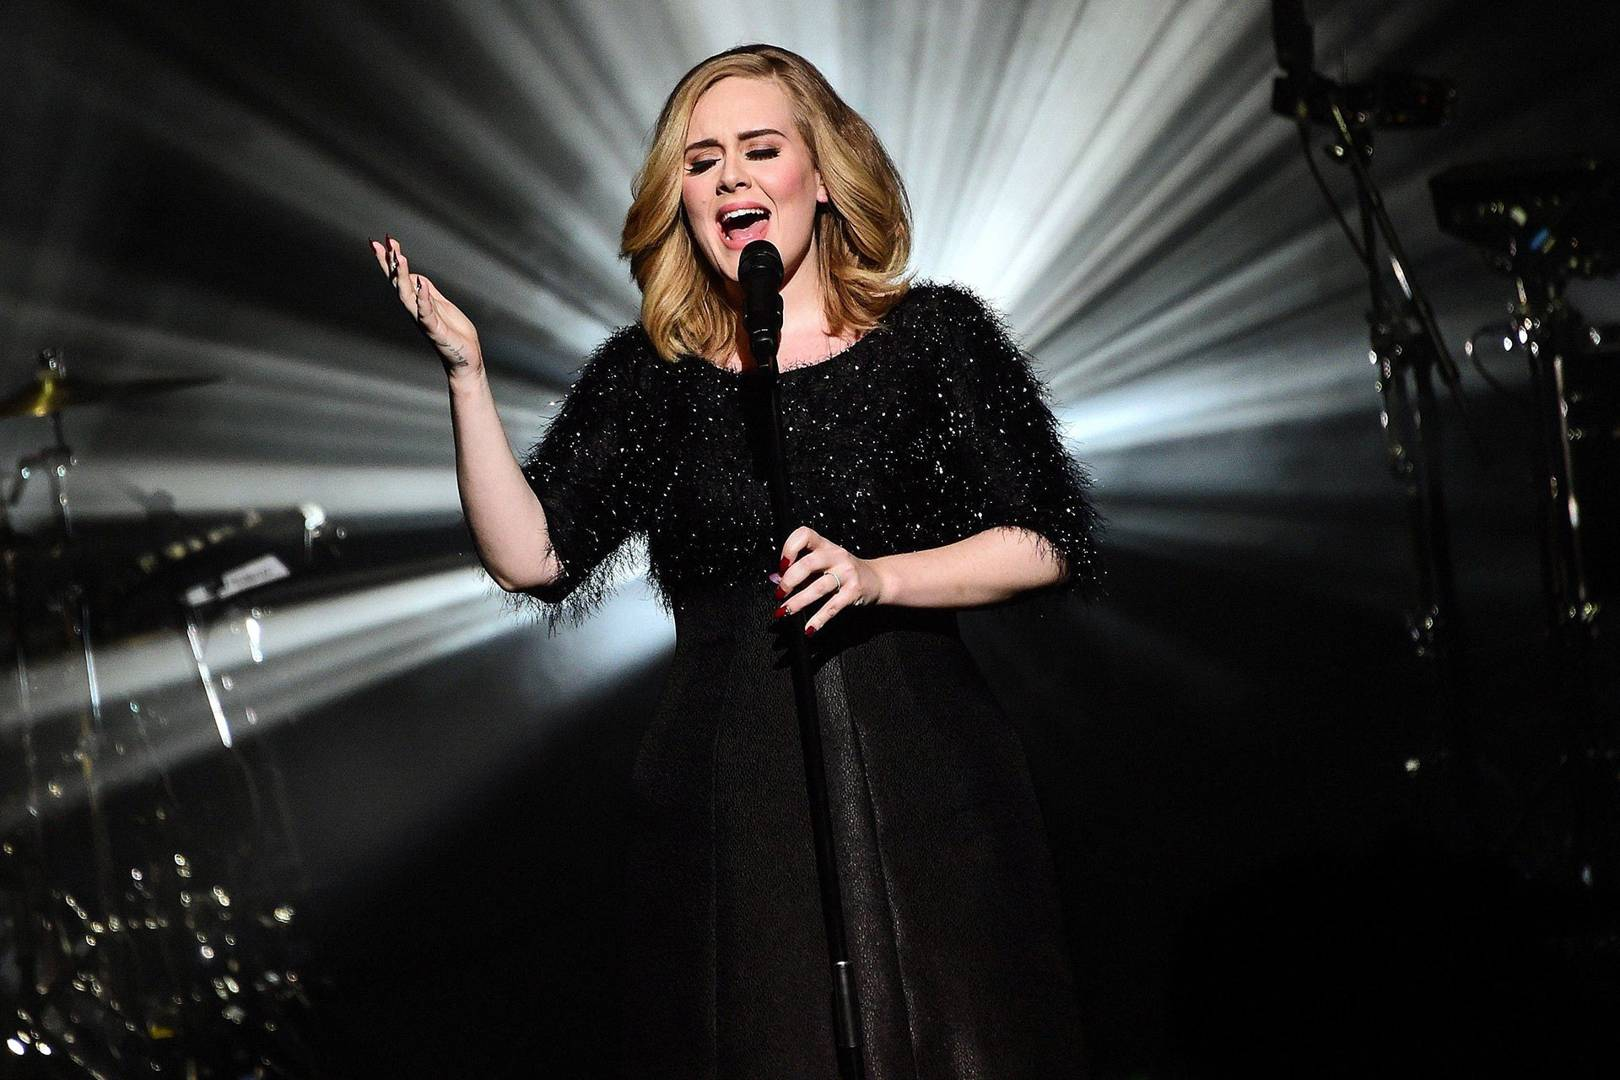 Adele Hello Video When We Were Young: New Music & Album